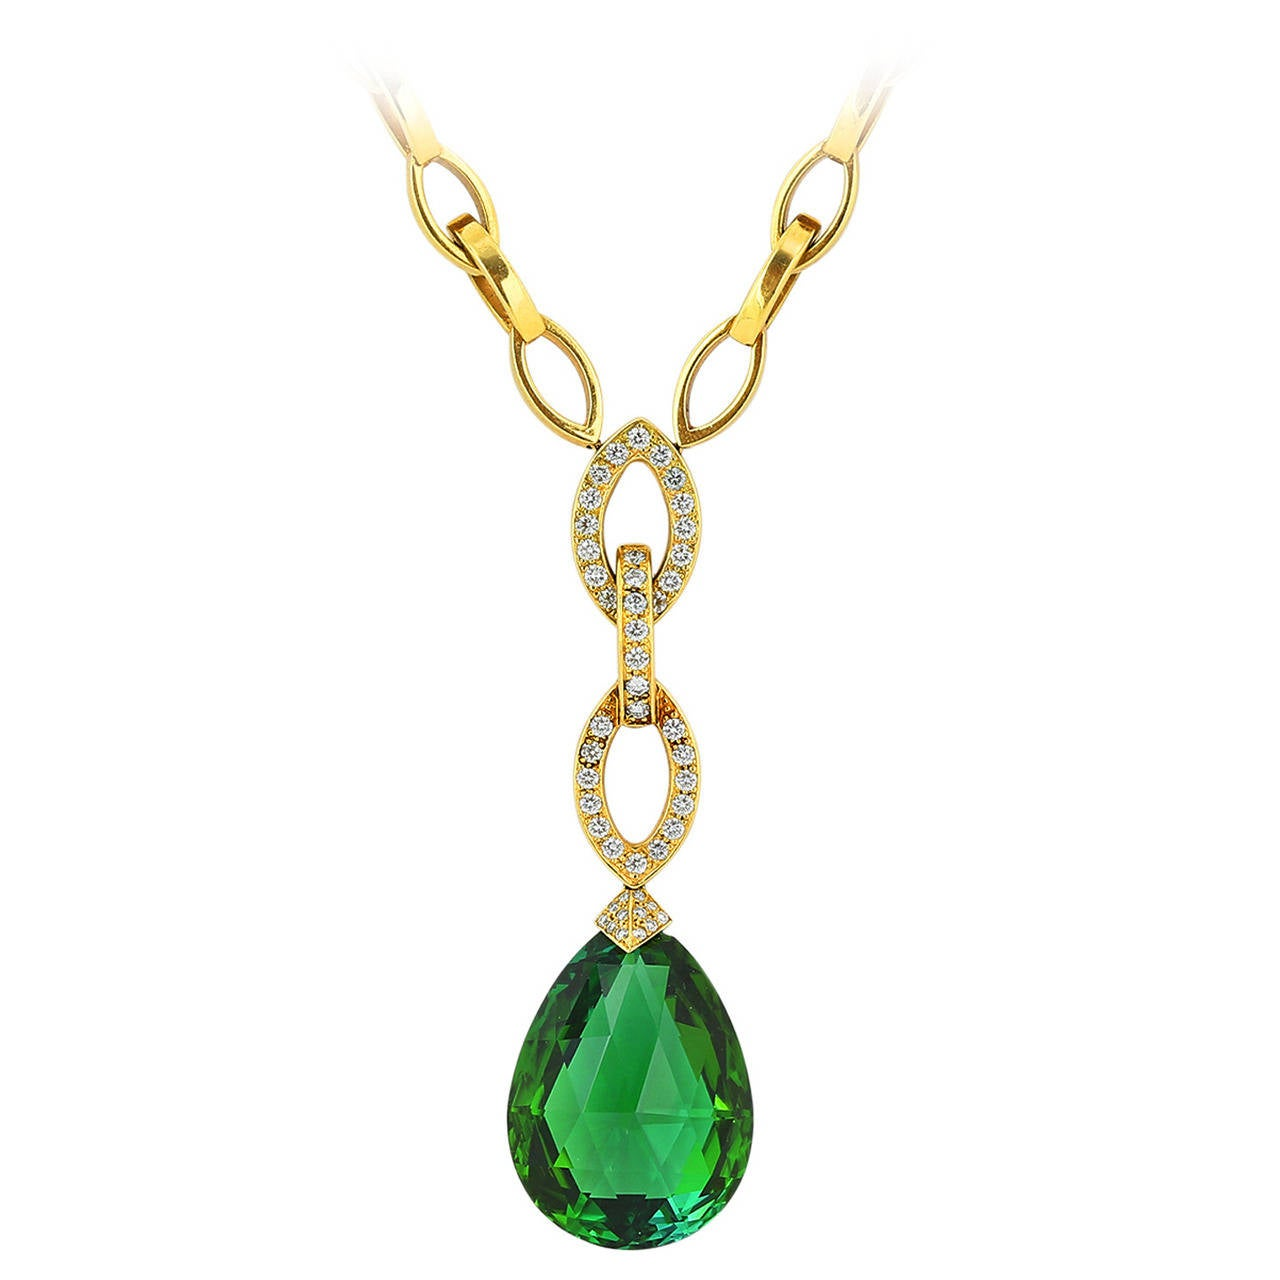 Mimi So Tourmaline Diamond Gold Necklace